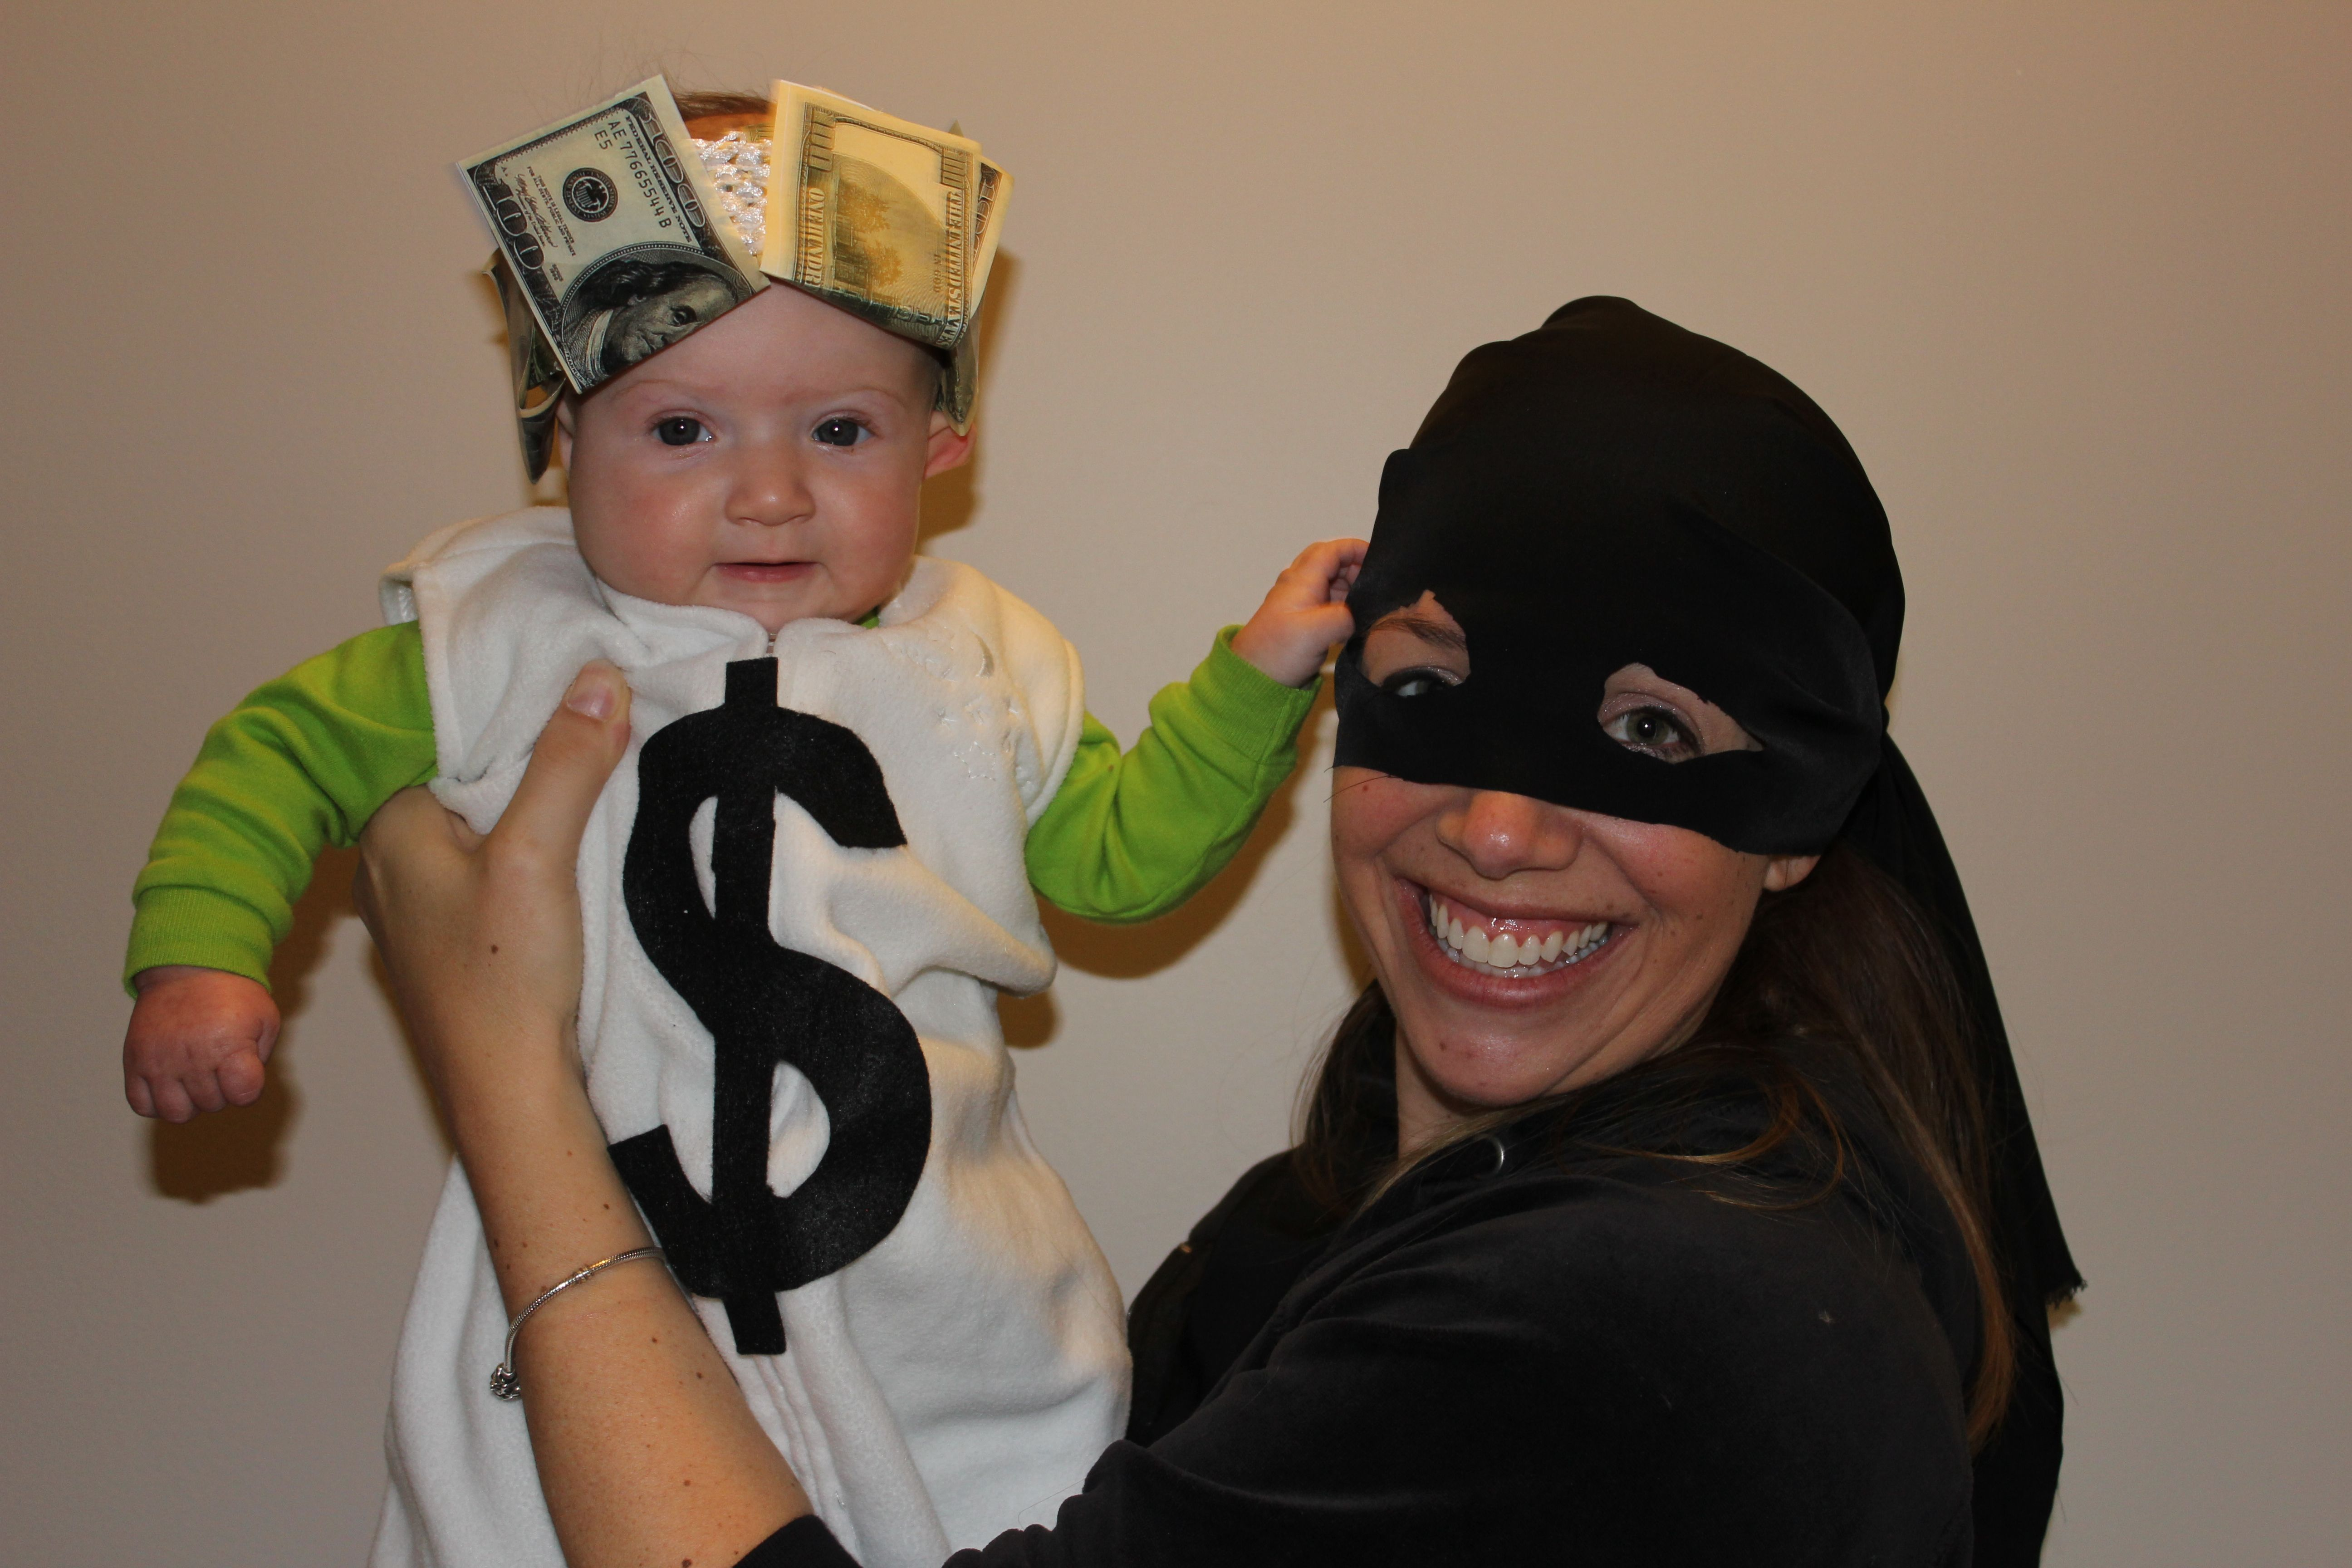 Diy mommybaby halloween costume mommy robber and baby money bag diy mommybaby halloween costume mommy robber and baby money bag sleep sack solutioingenieria Images